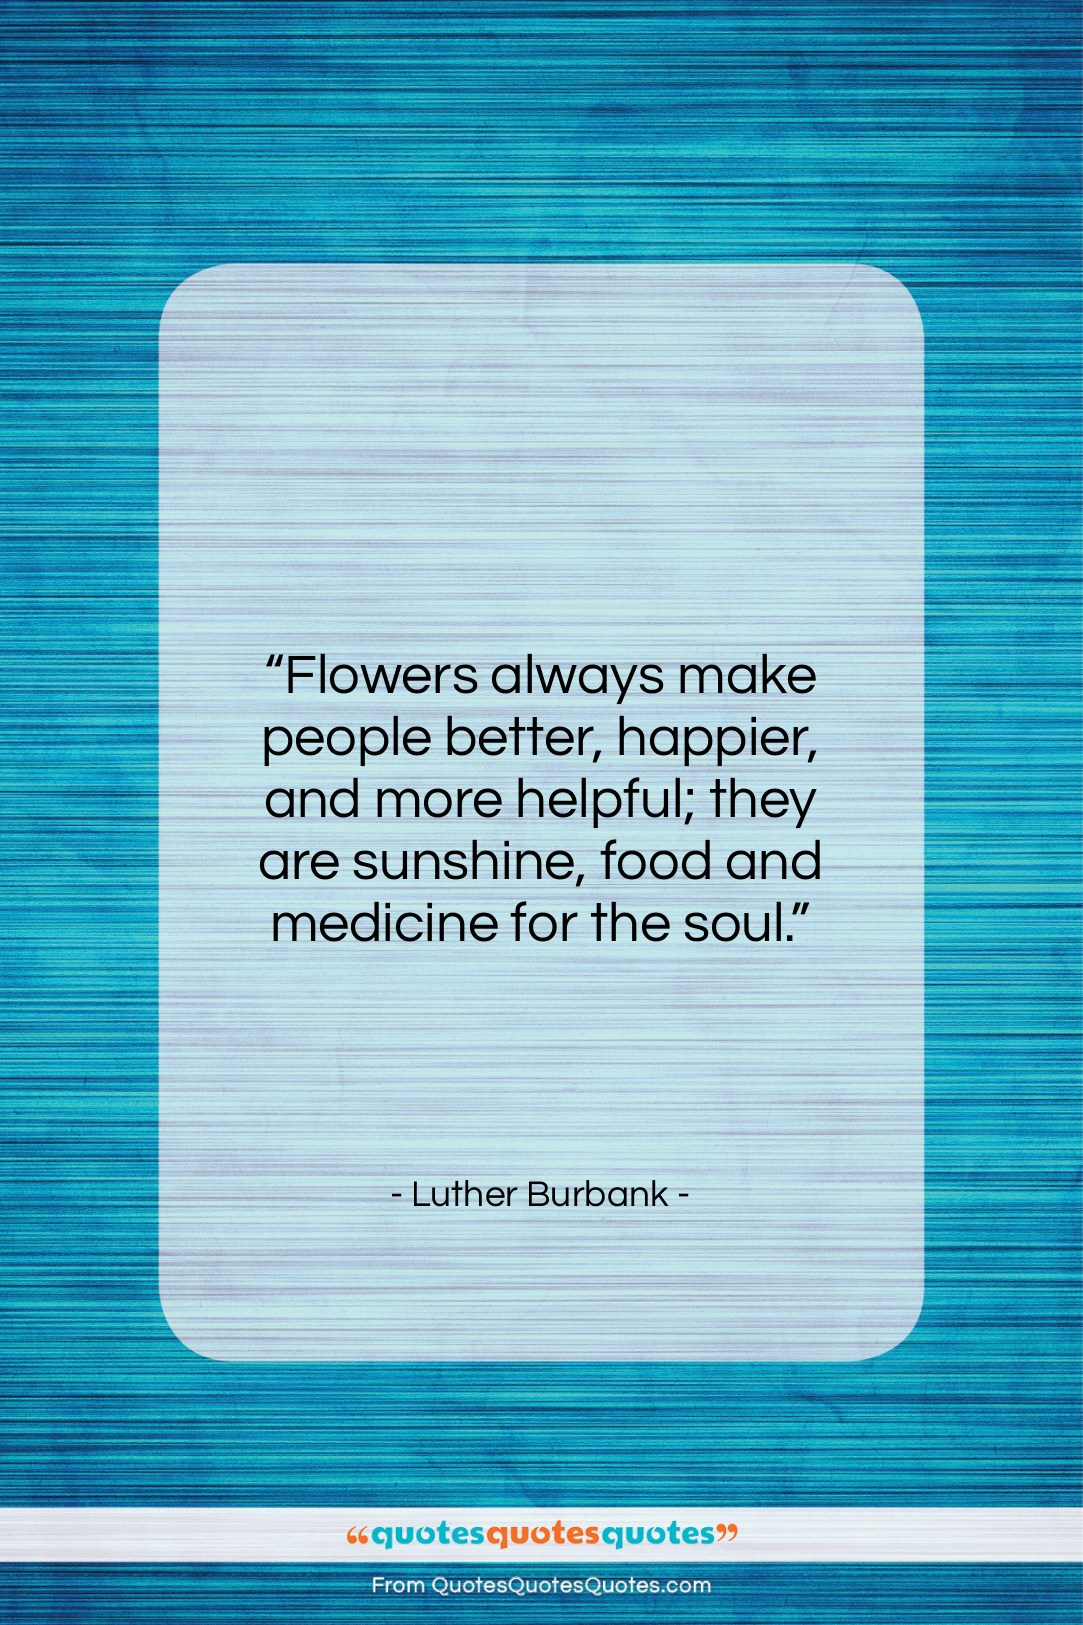 """Luther Burbank quote: """"Flowers always make people better, happier, and…""""- at QuotesQuotesQuotes.com"""